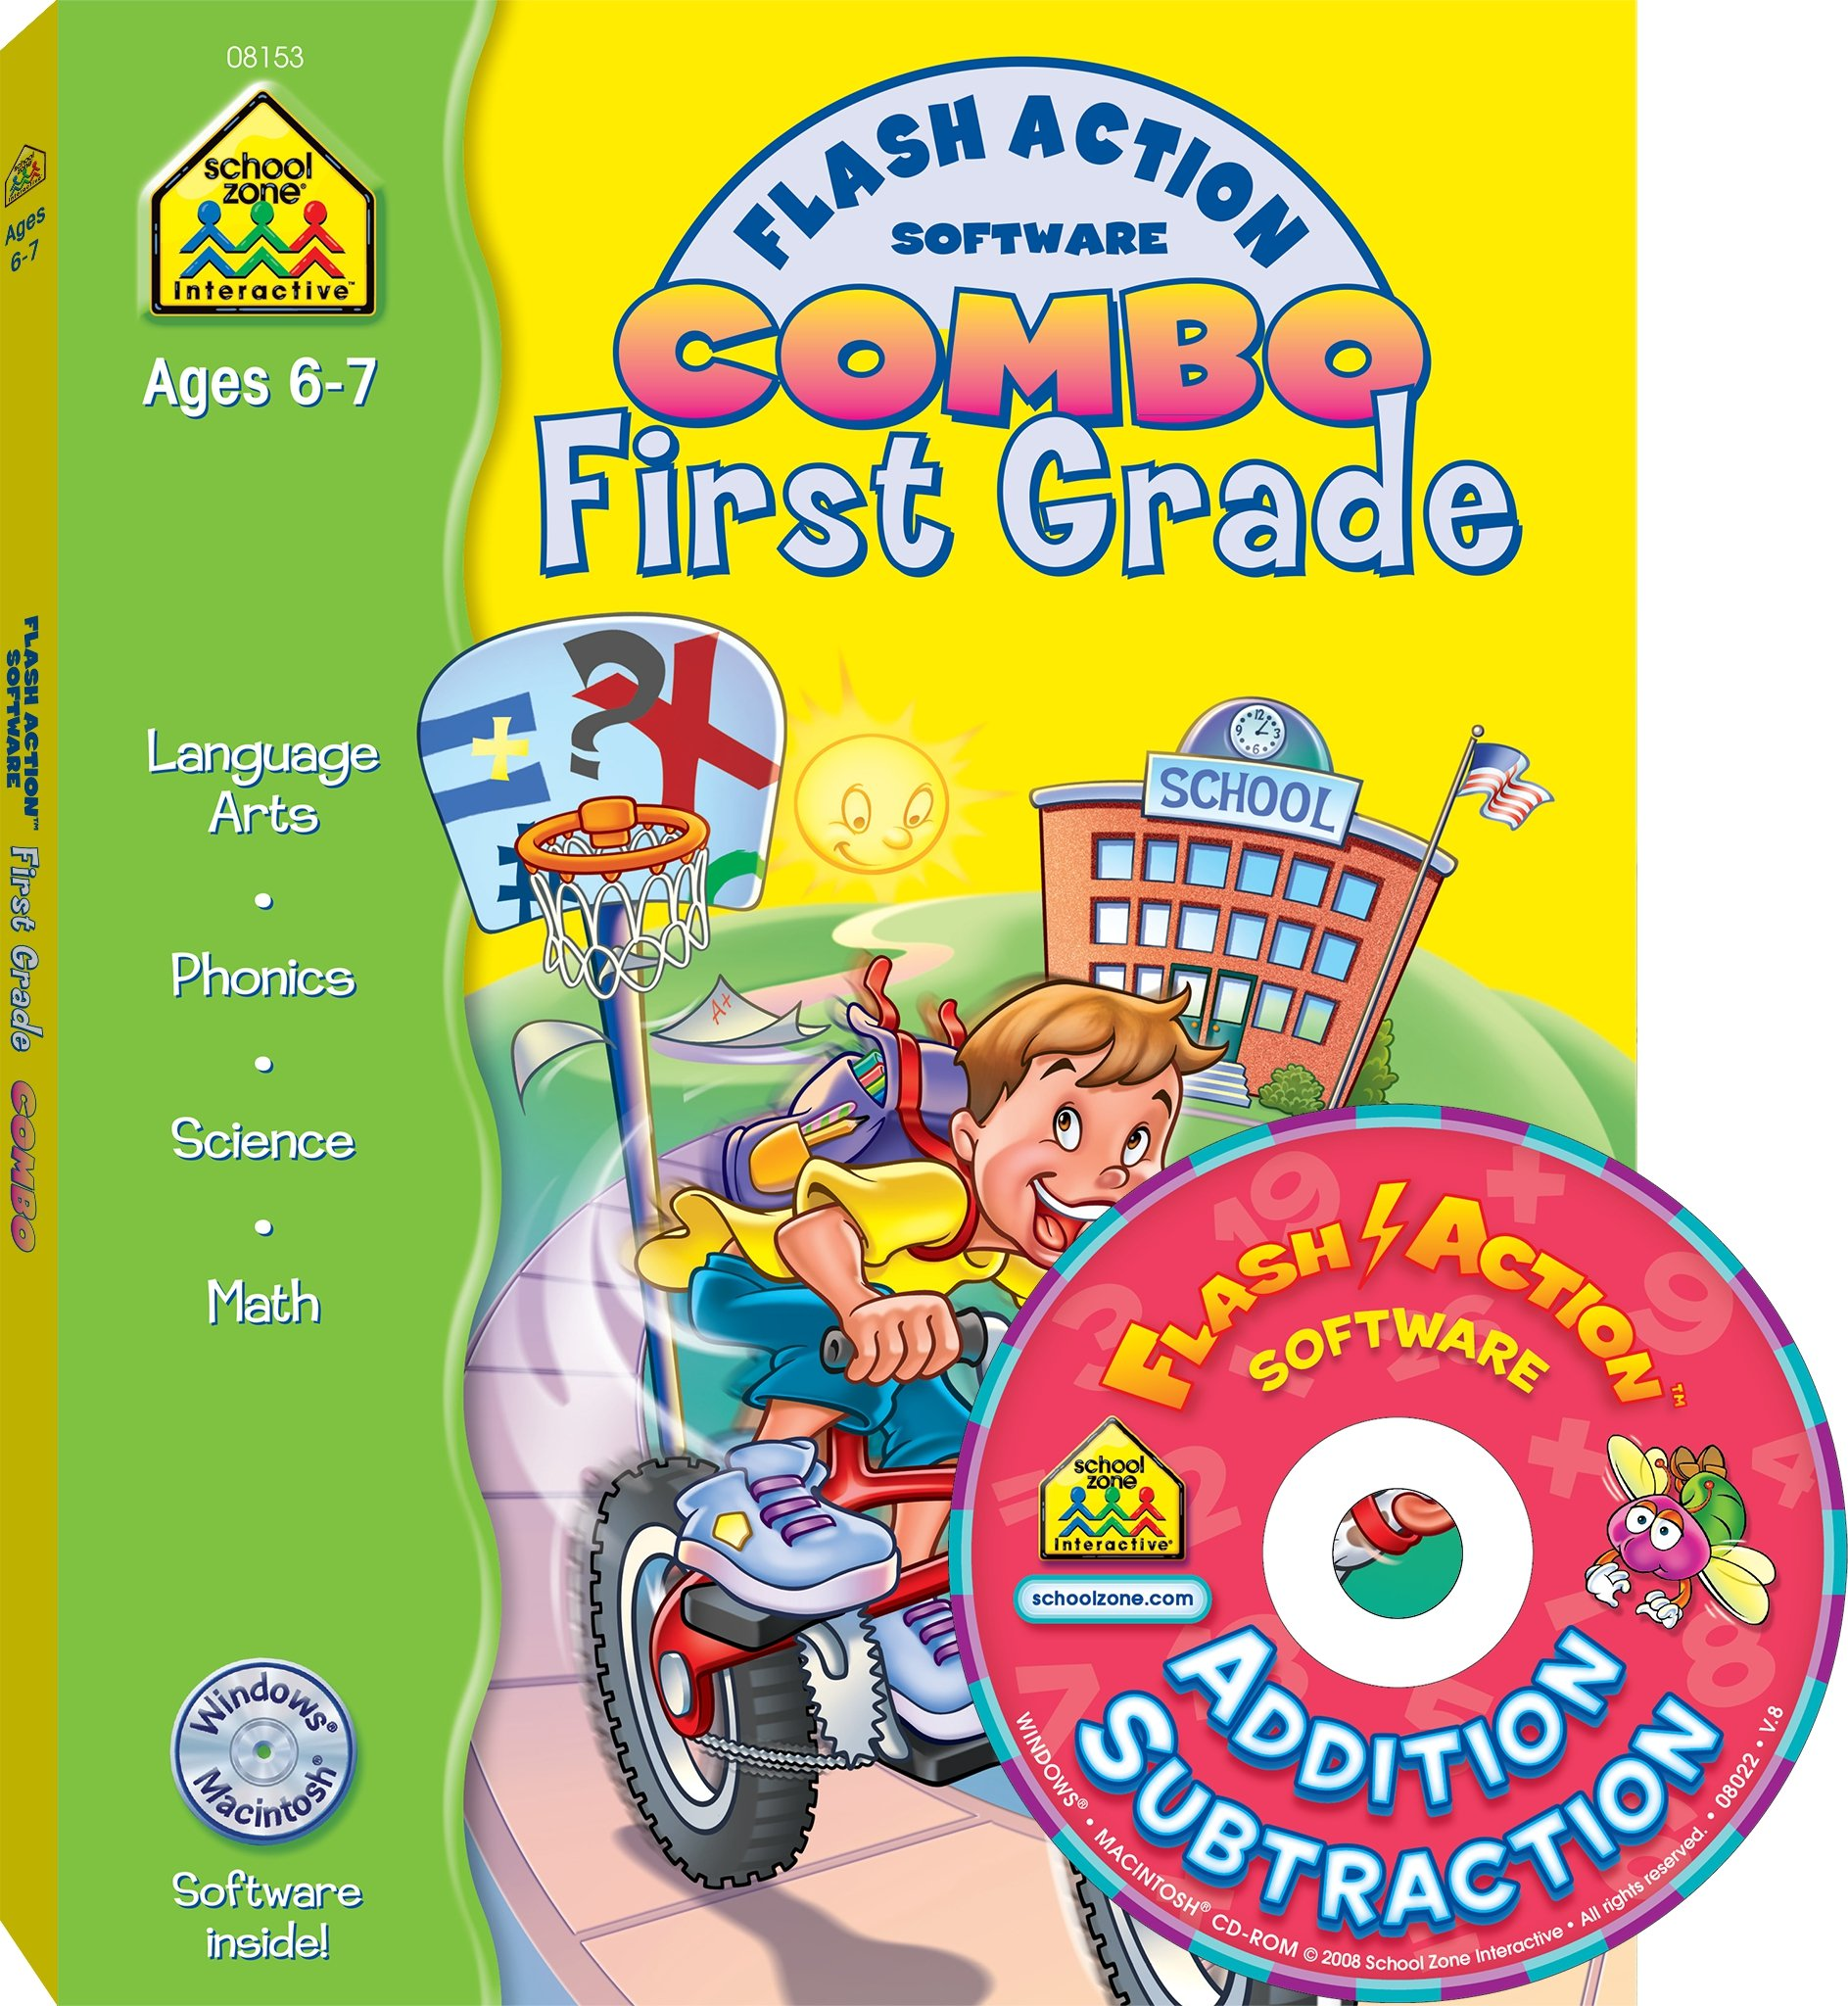 First Grade Flash Action Combo (Flash Action Software)